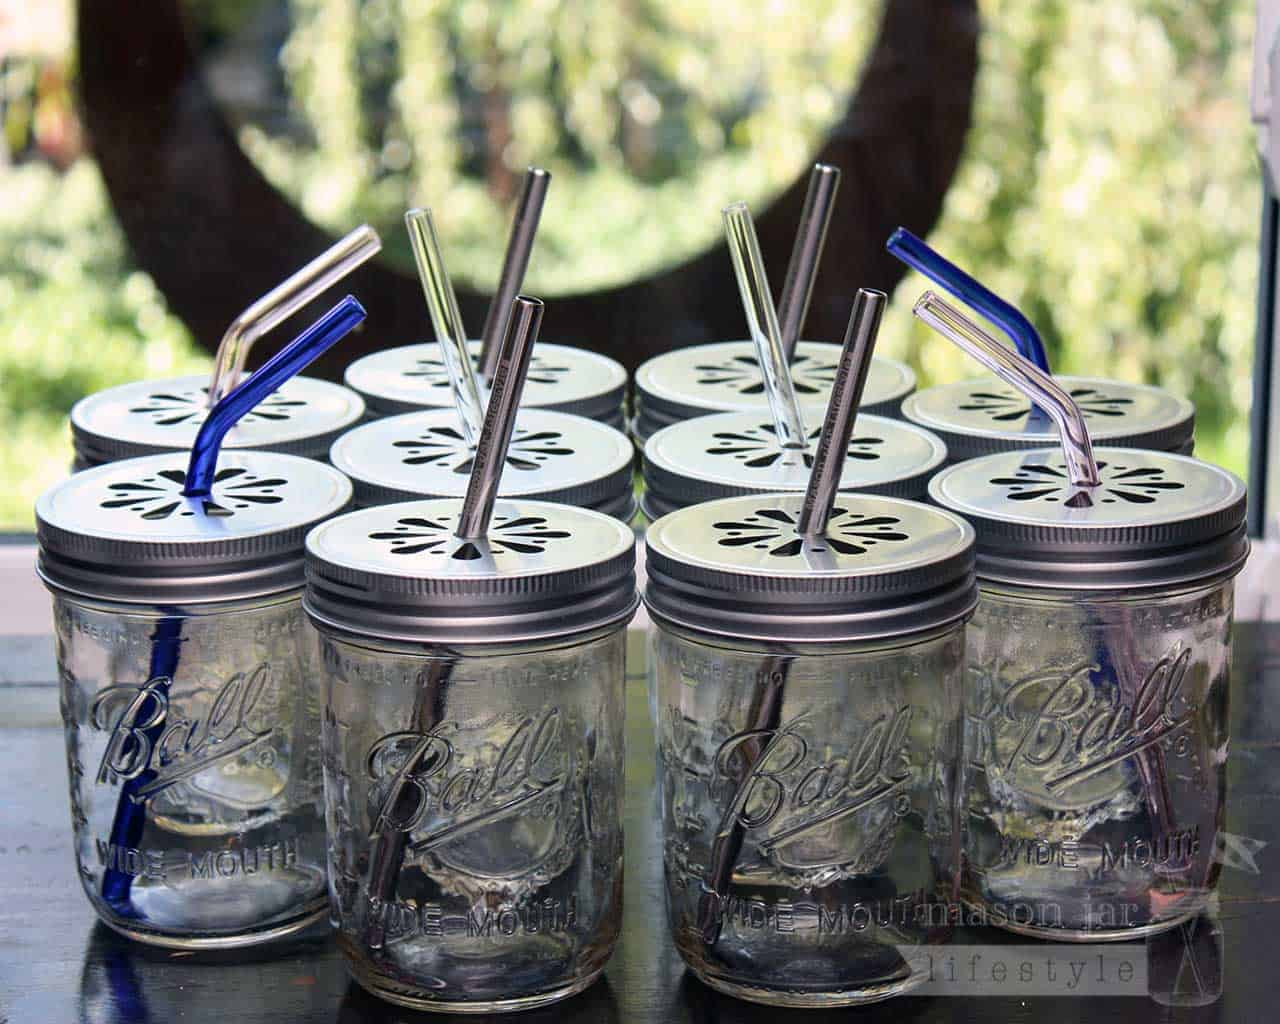 Shiny silver daisy straw hole lids for wide mouth mason jars